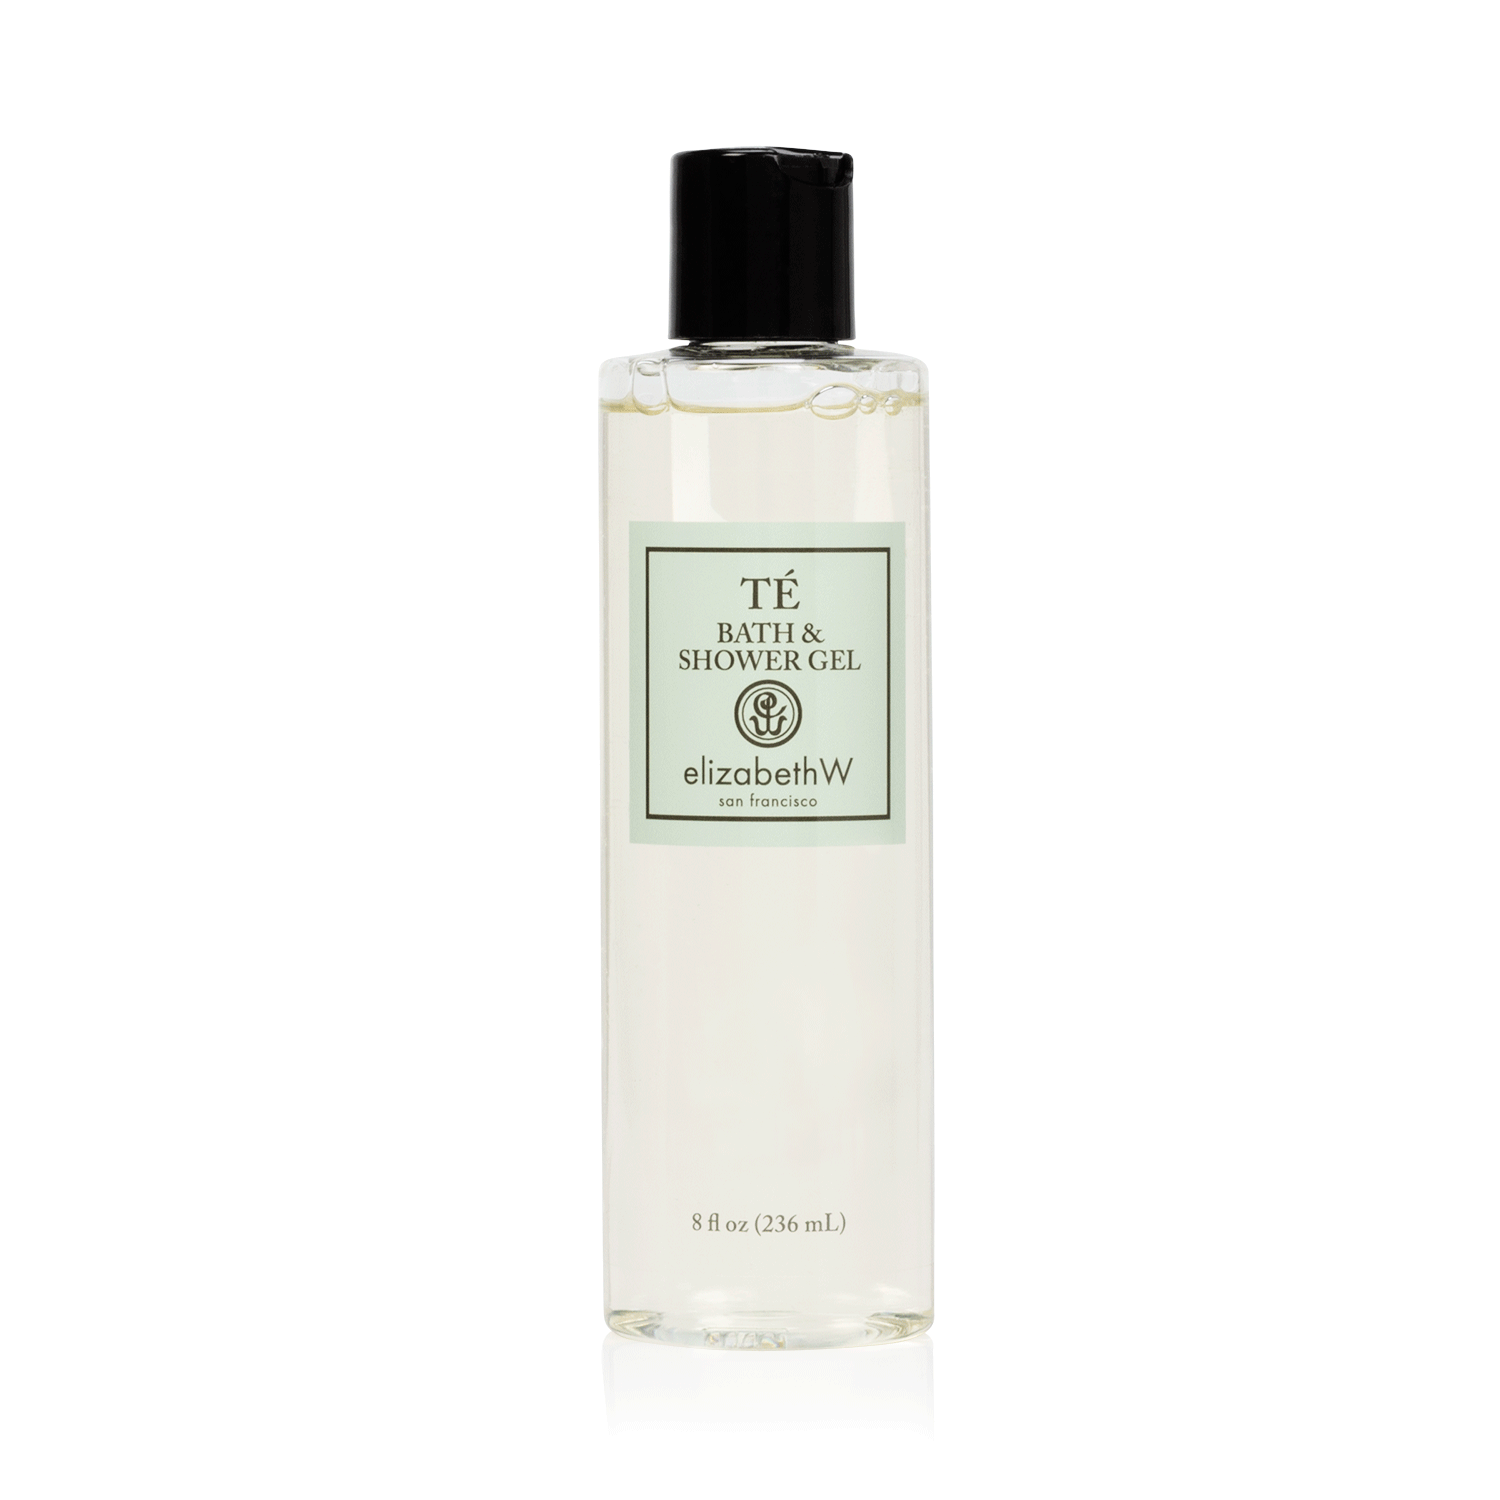 Té Bath & Shower Gel